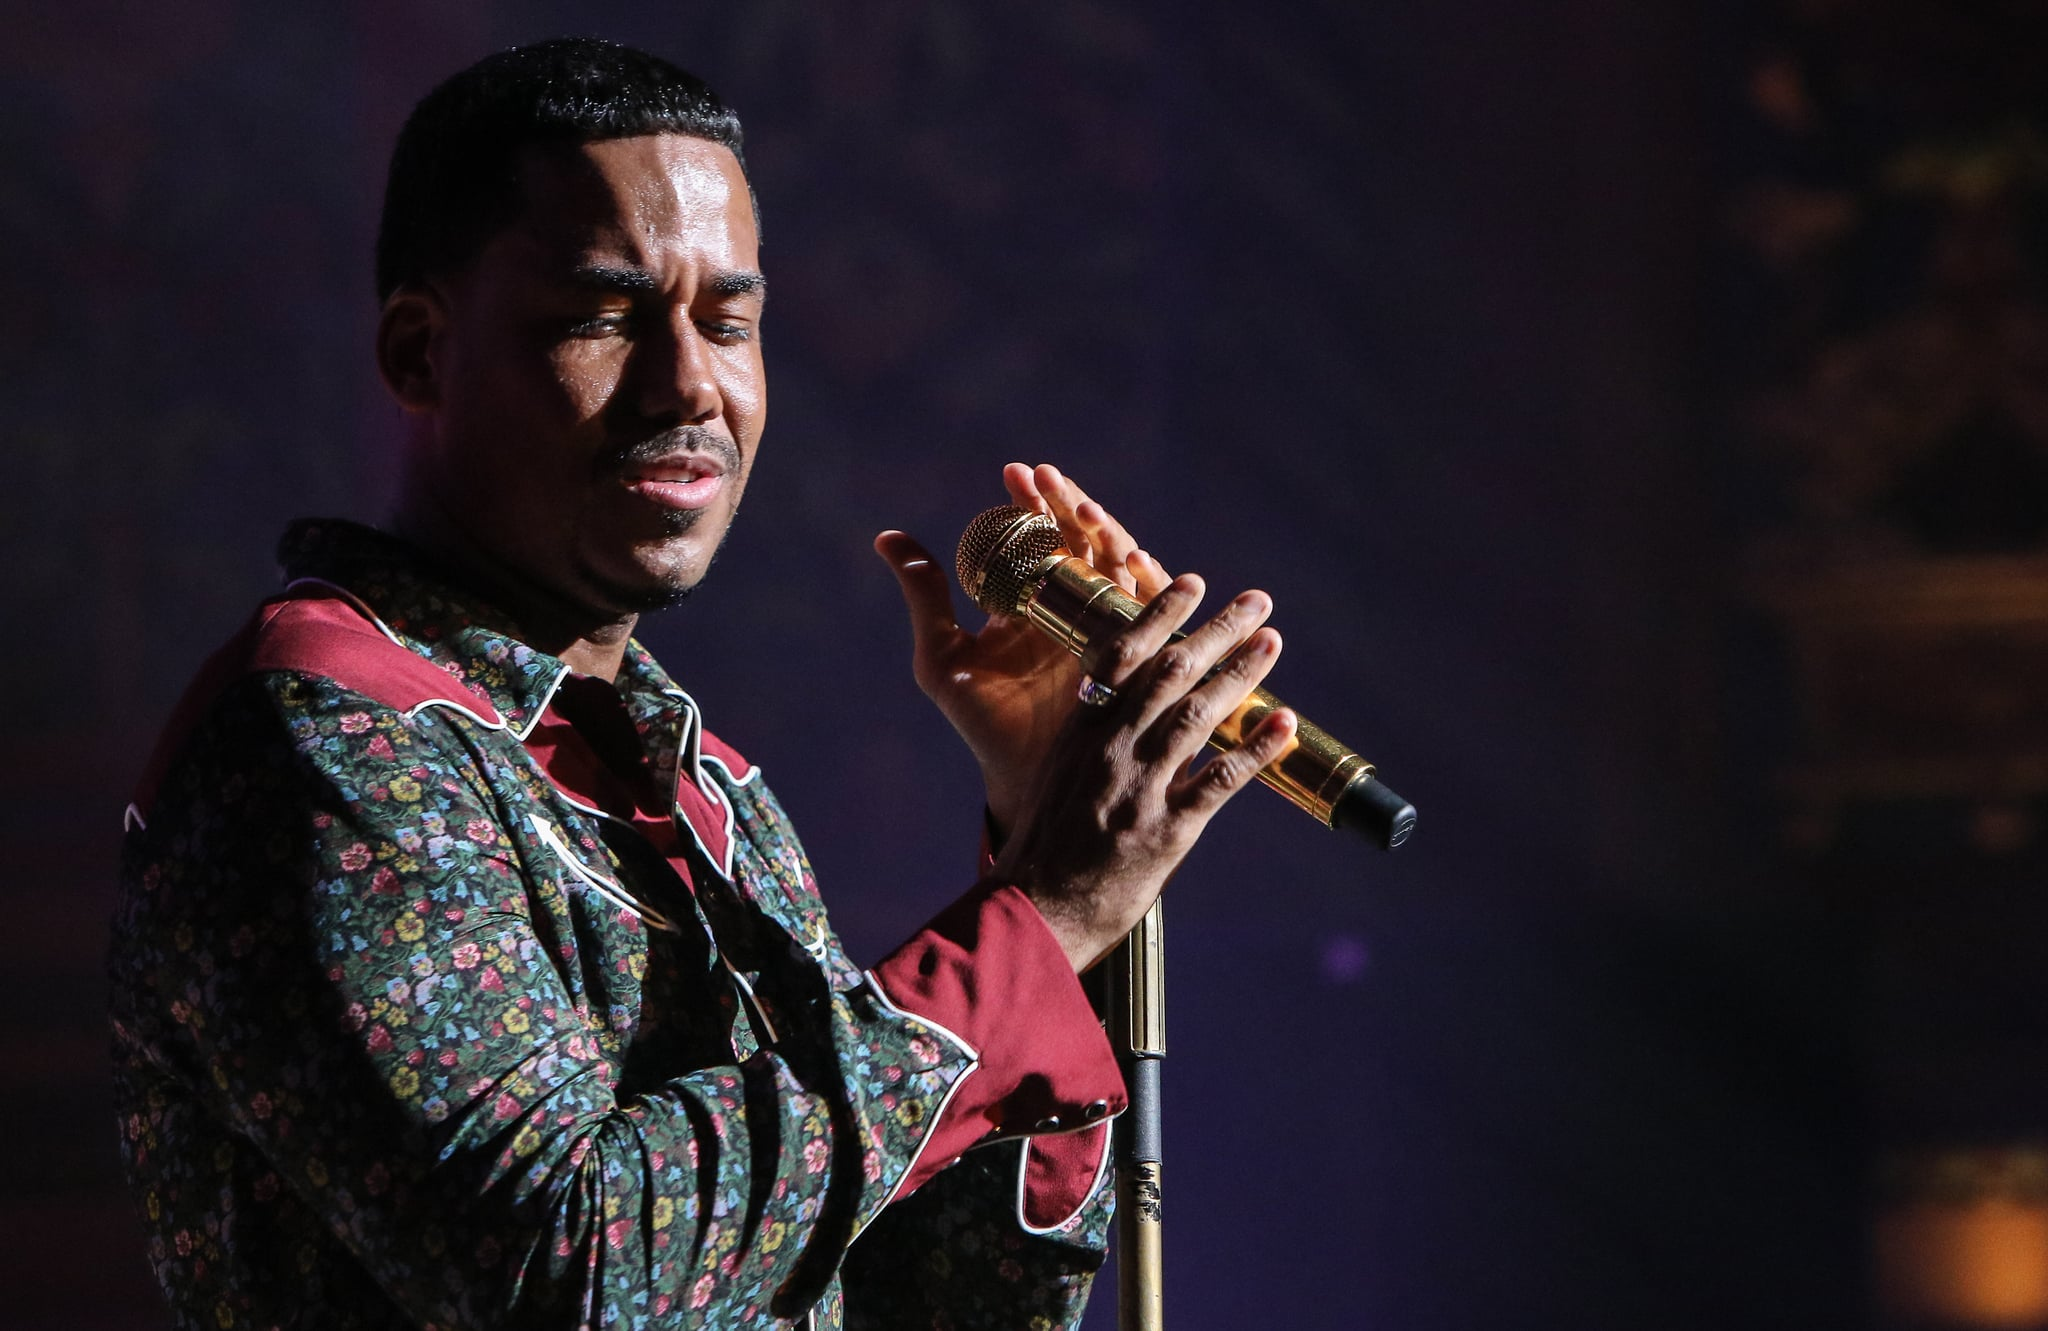 MIAMI, FL - AUGUST 15:  Romeo Santos performs during a intimate evening presented by La Musica at Olympia Theater on August 15, 2017 in Miami, Florida.  (Photo by John Parra/WireImage)